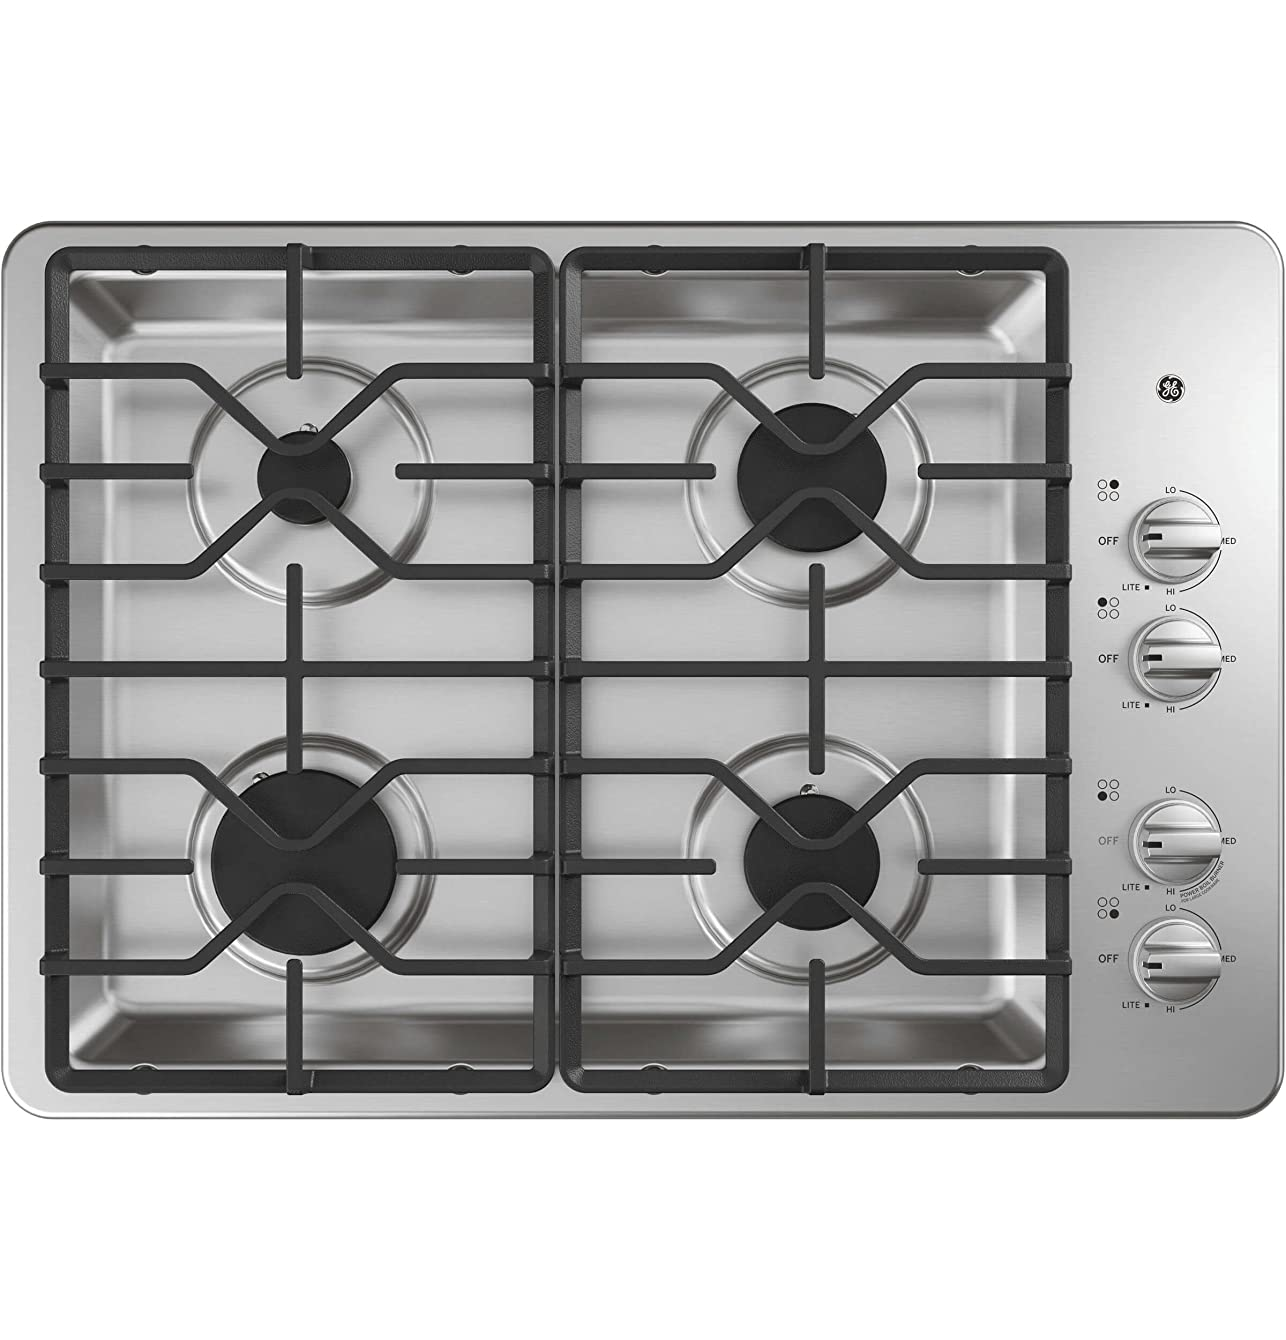 GE JGP3530SLSS 30 Inch Gas Max System, Power Boil, Simmer, Continuous, Dishwasher Safe Grates, Deep Recessed Cooktop, 4 Sealed Burners and ADA Compliant